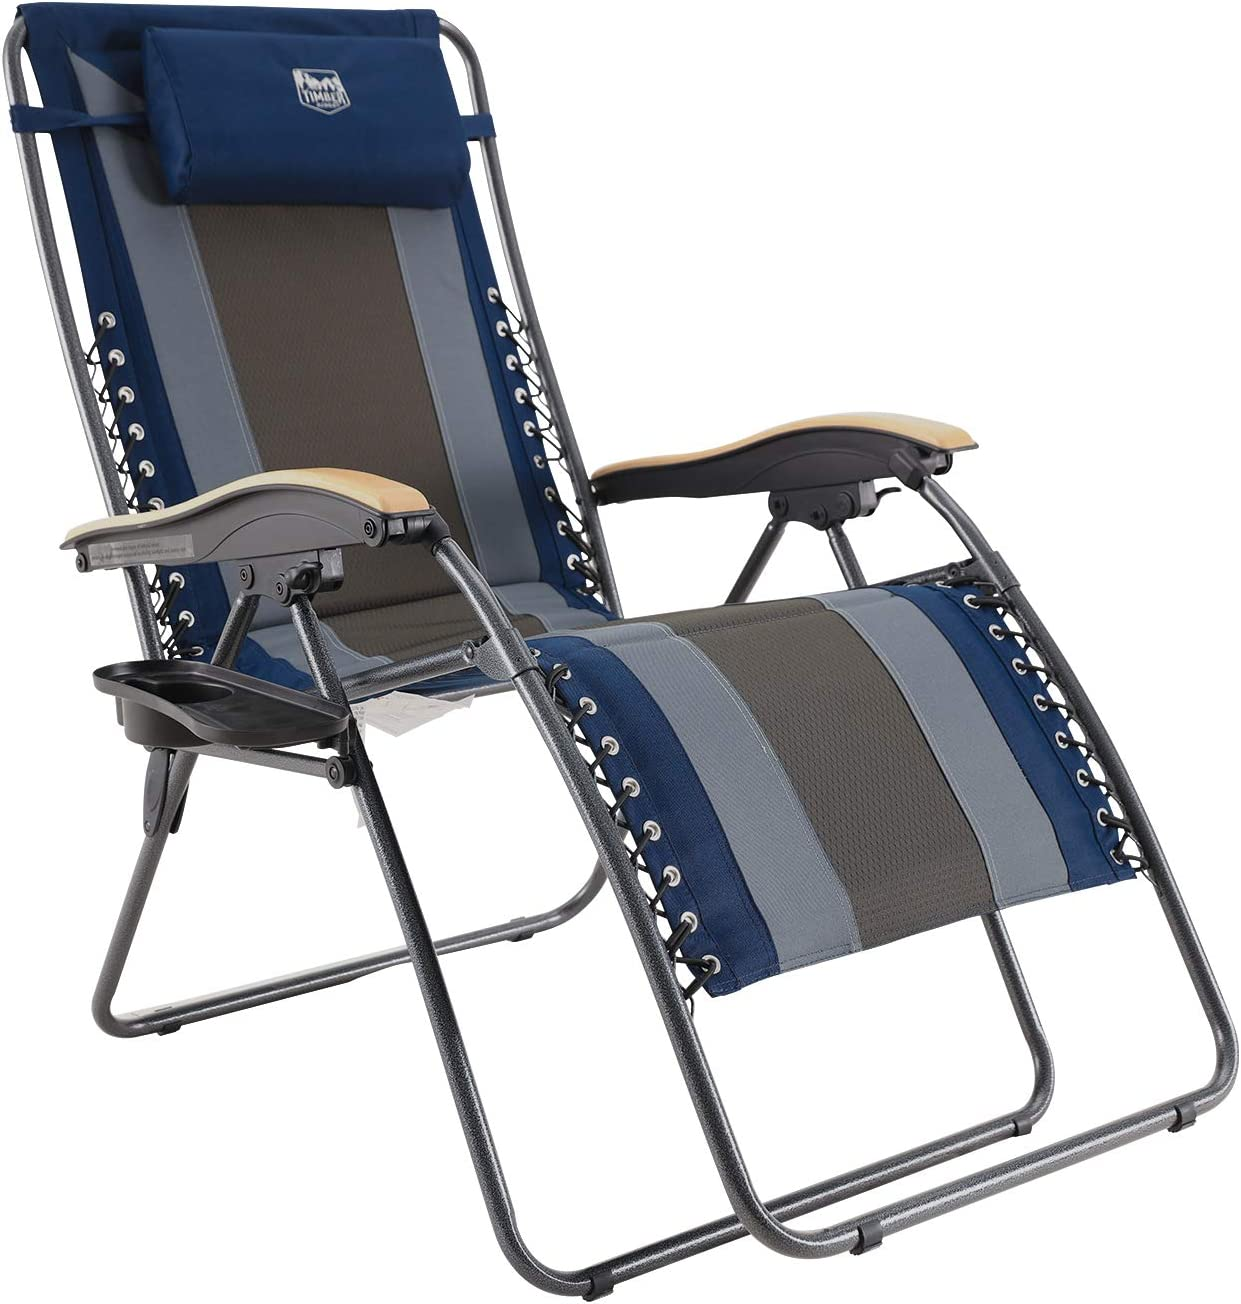 TIMBER RIDGE XL Padded Zero Gravity Lounge Chair with Cup Holder Adjustable Headrest, Support up to 350LBS (Navy Blue)